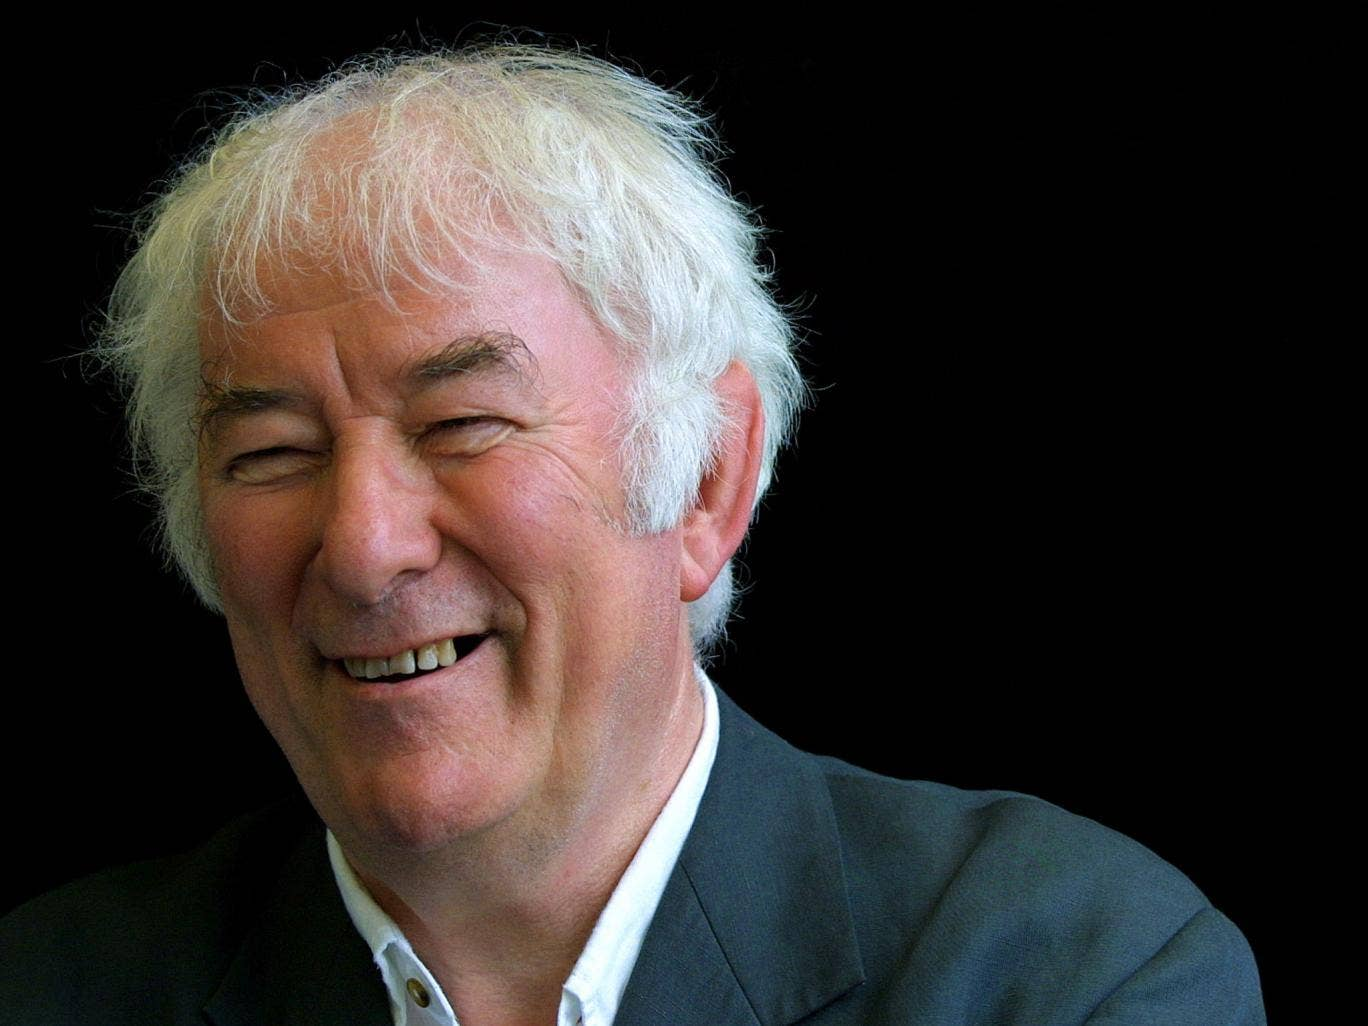 Seamus Heaney was influenced by Gerard Manley